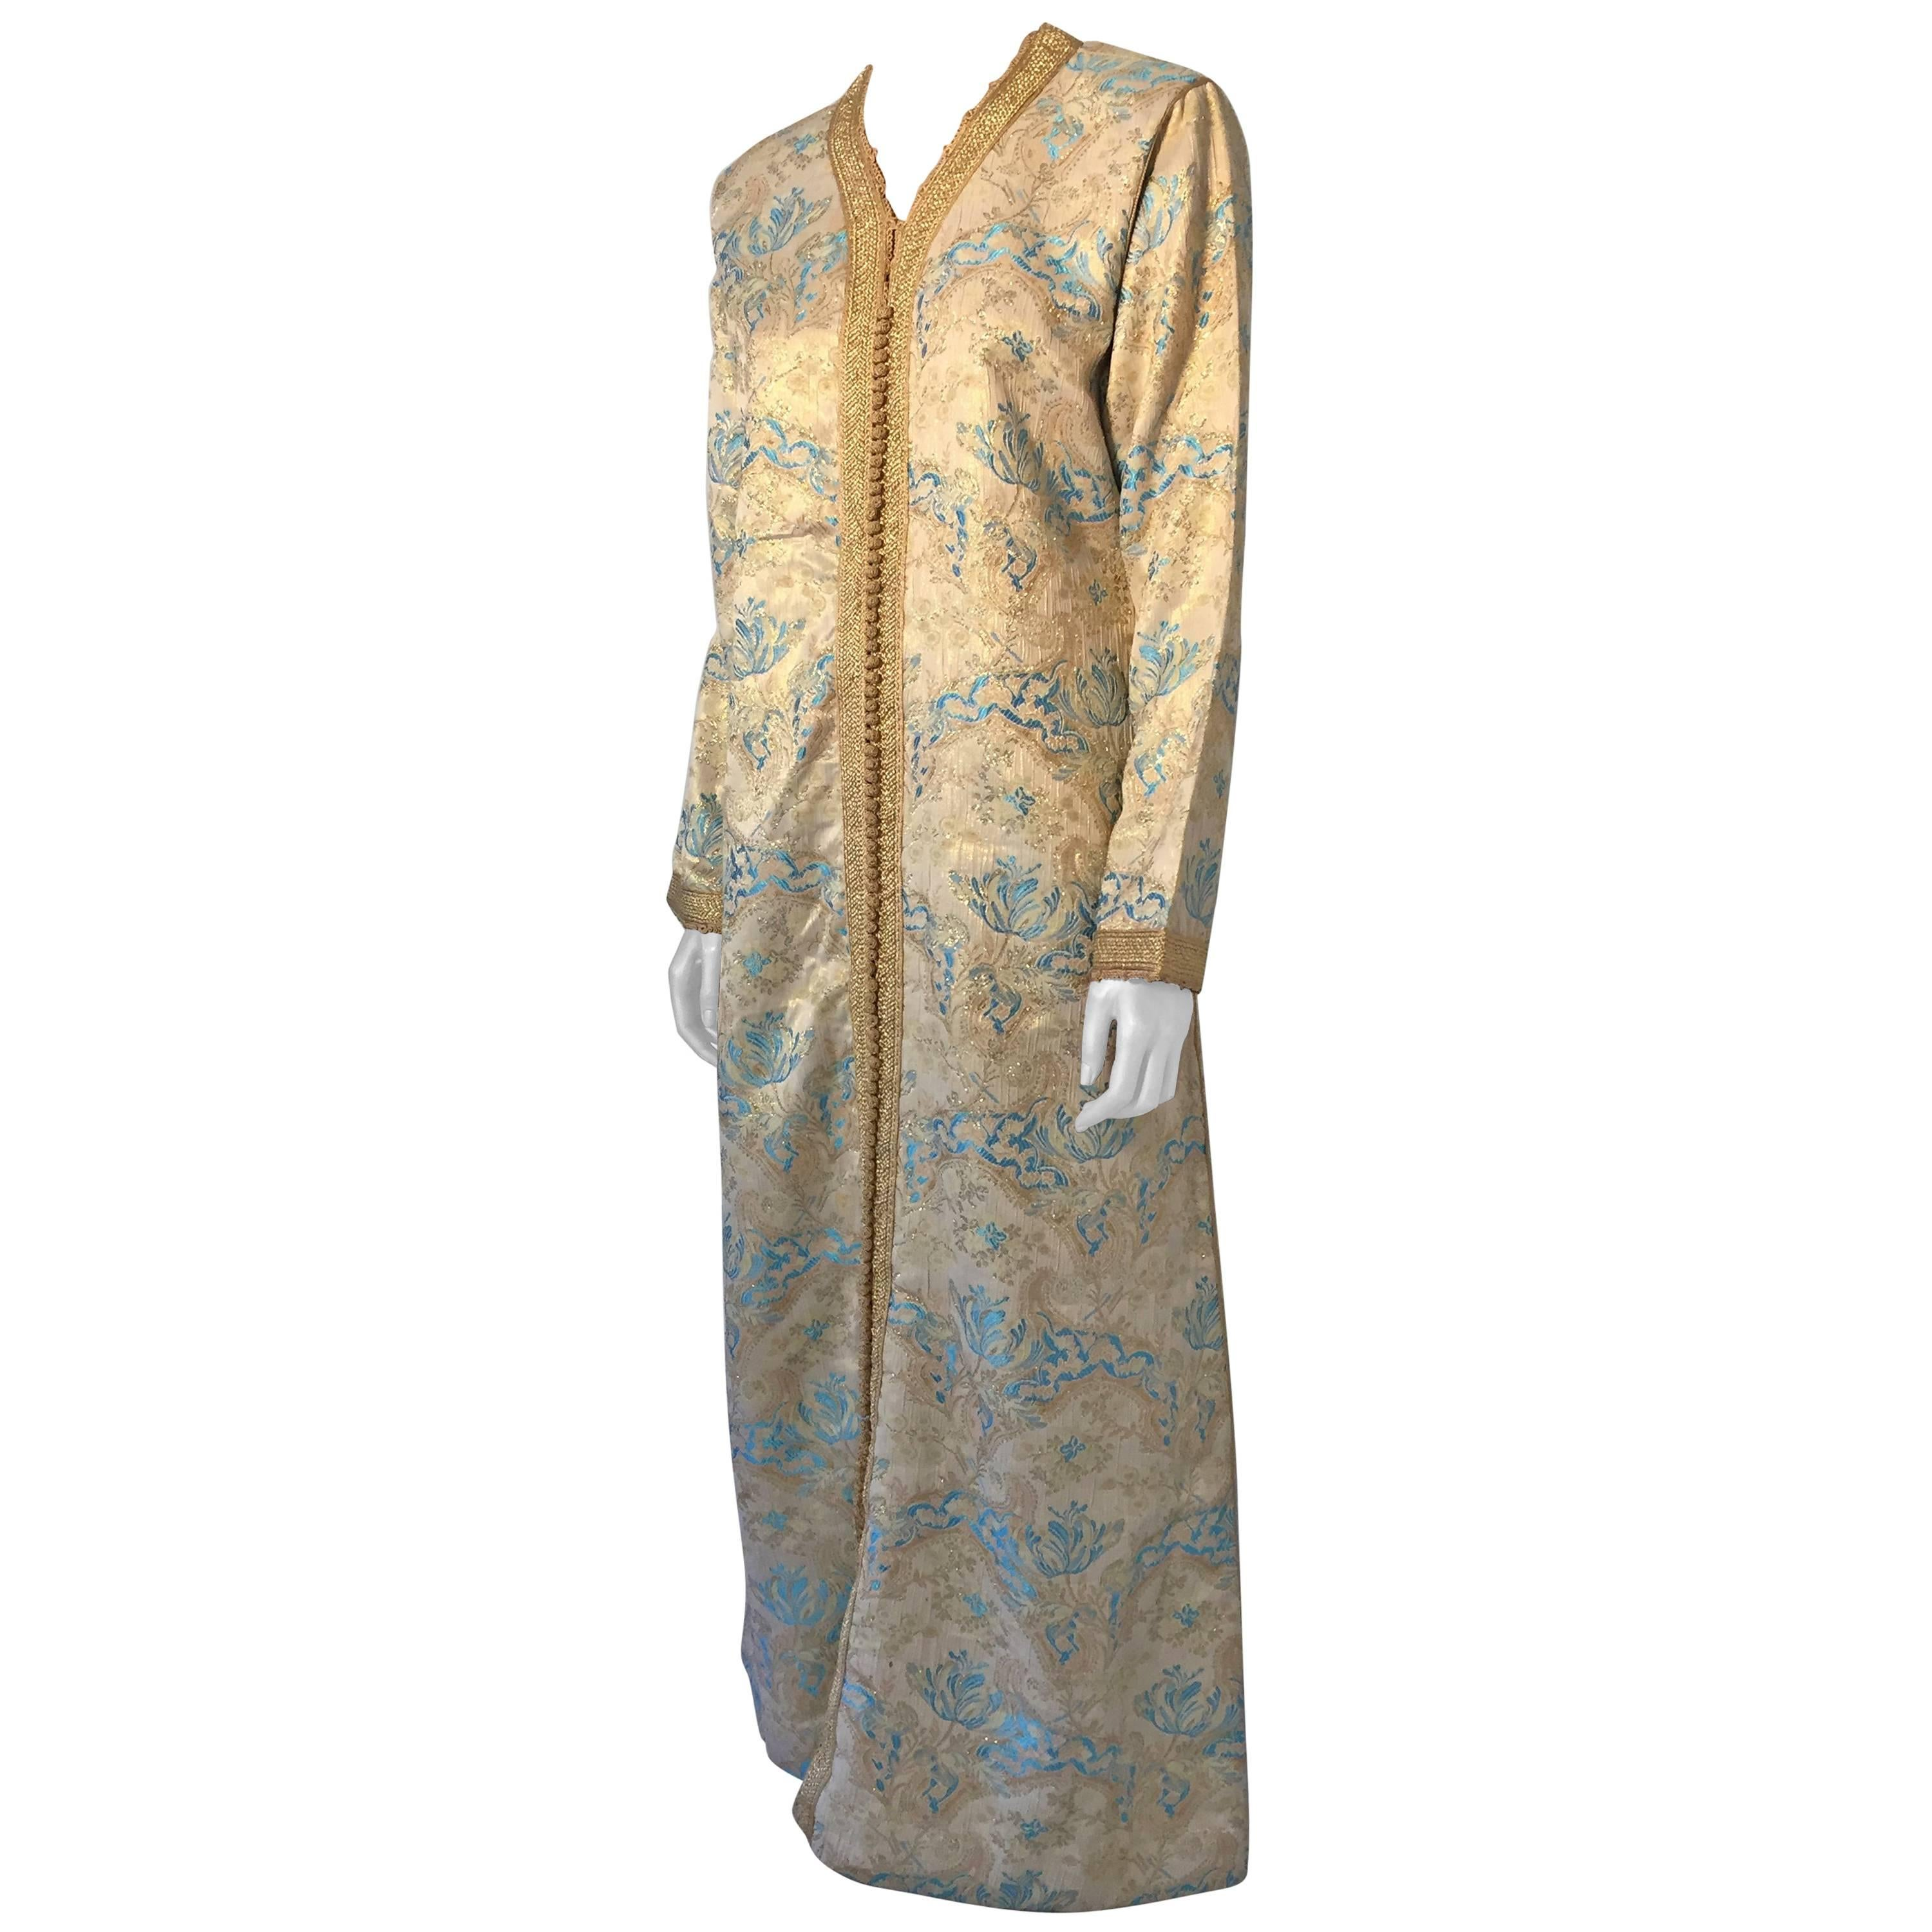 Moroccan Caftan, Turquoise and Gold Brocade Kaftan Size Medium